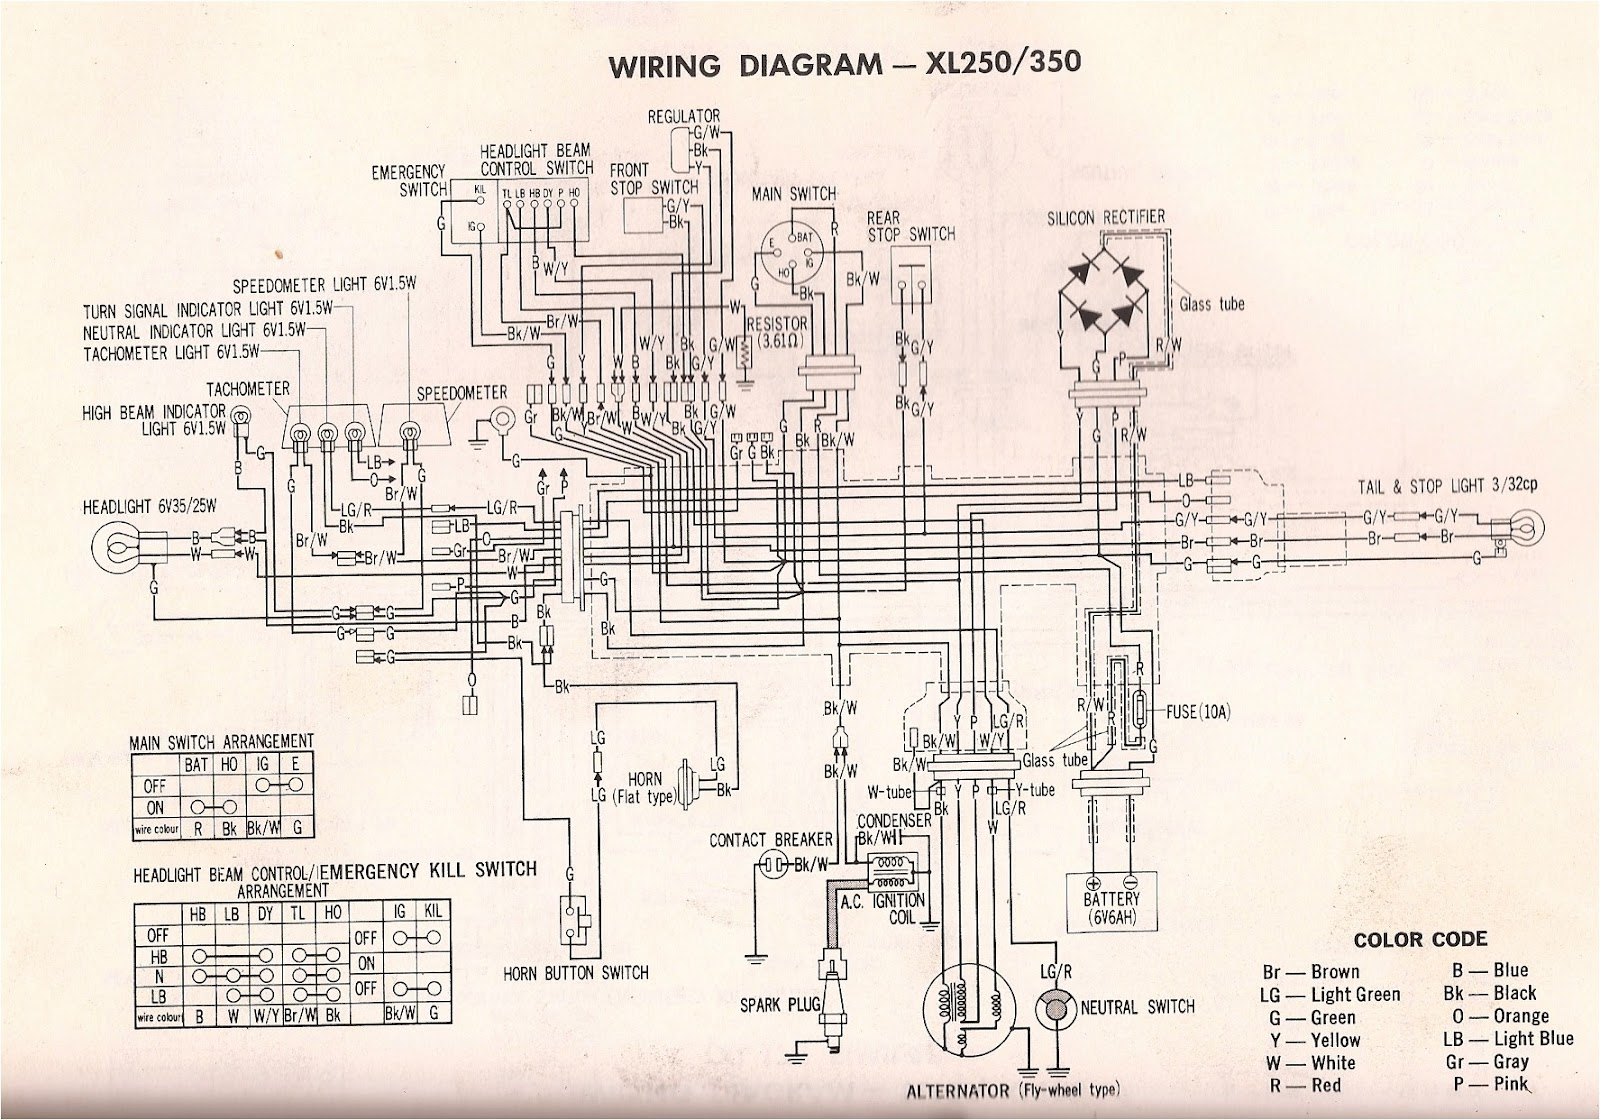 XL350+Wiring+diagram+S r4l xl350 wiring diagram (and xl250) honda cm400 wiring diagram at webbmarketing.co